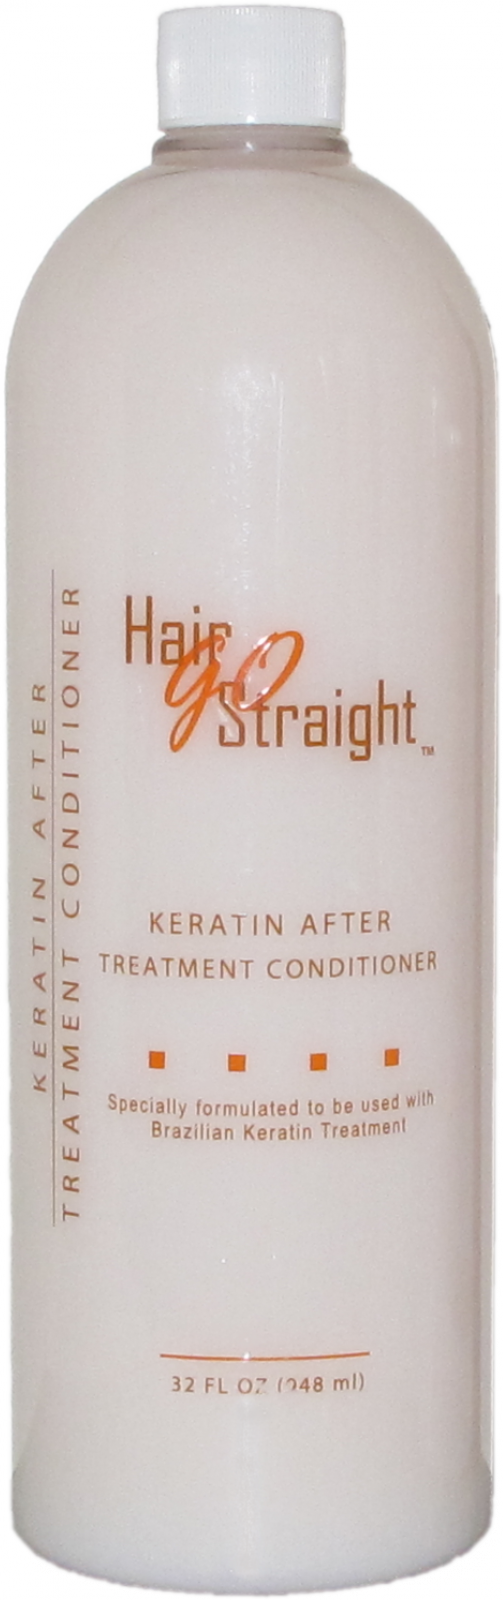 CONDITIONER%20HAIR%20GO%20STRAIGHT%201000%20ml